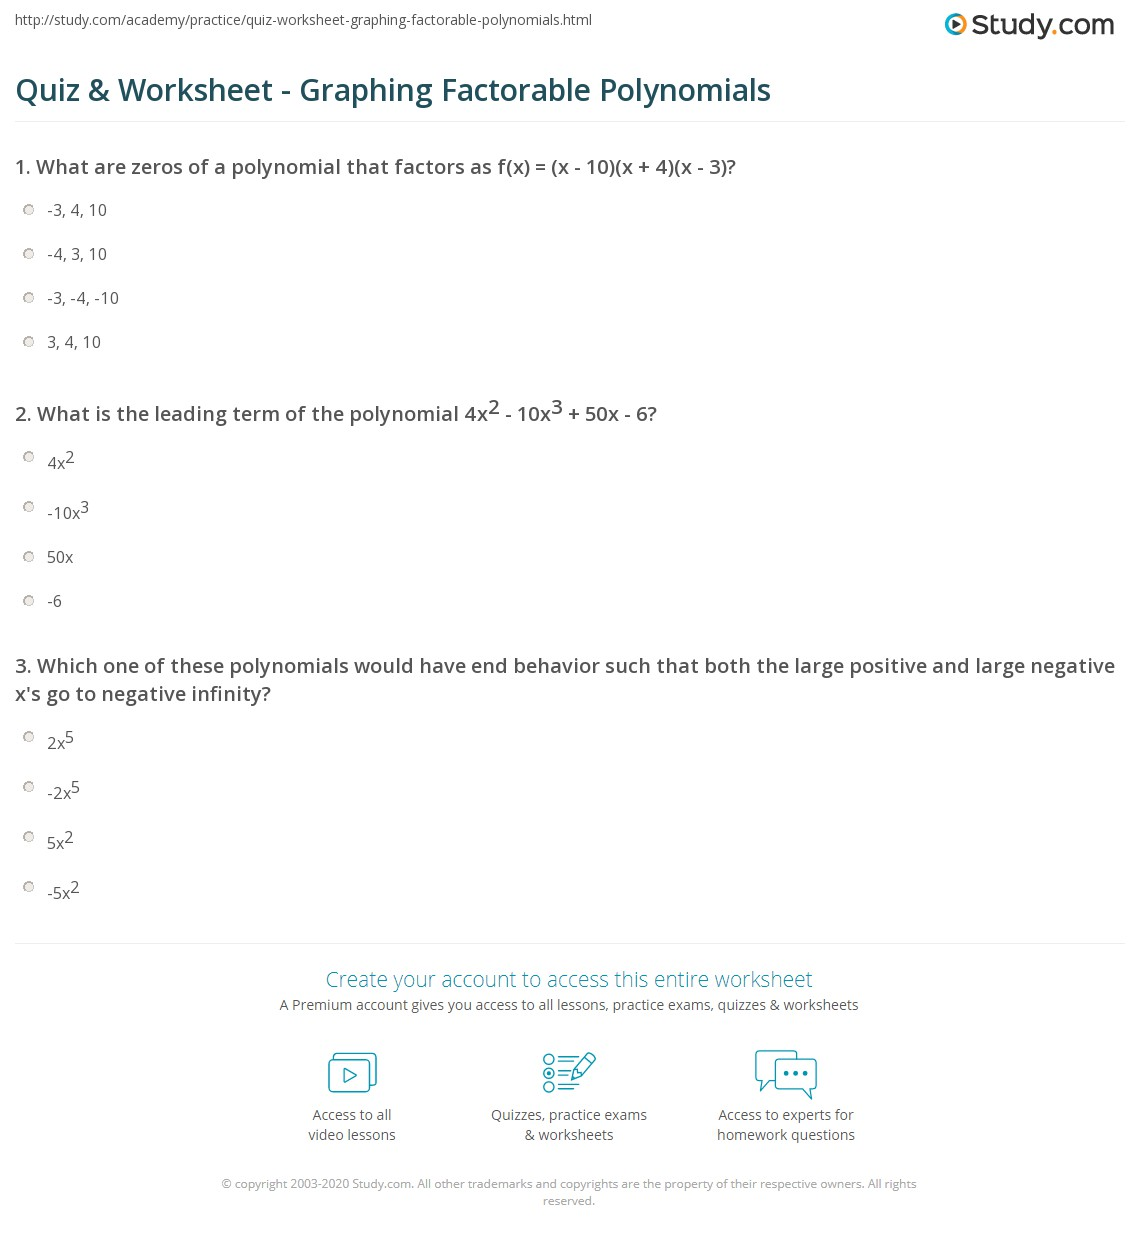 Free Worksheet Graphing Polynomials Worksheet quiz worksheet graphing factorable polynomials study com print polynomial functions worksheet